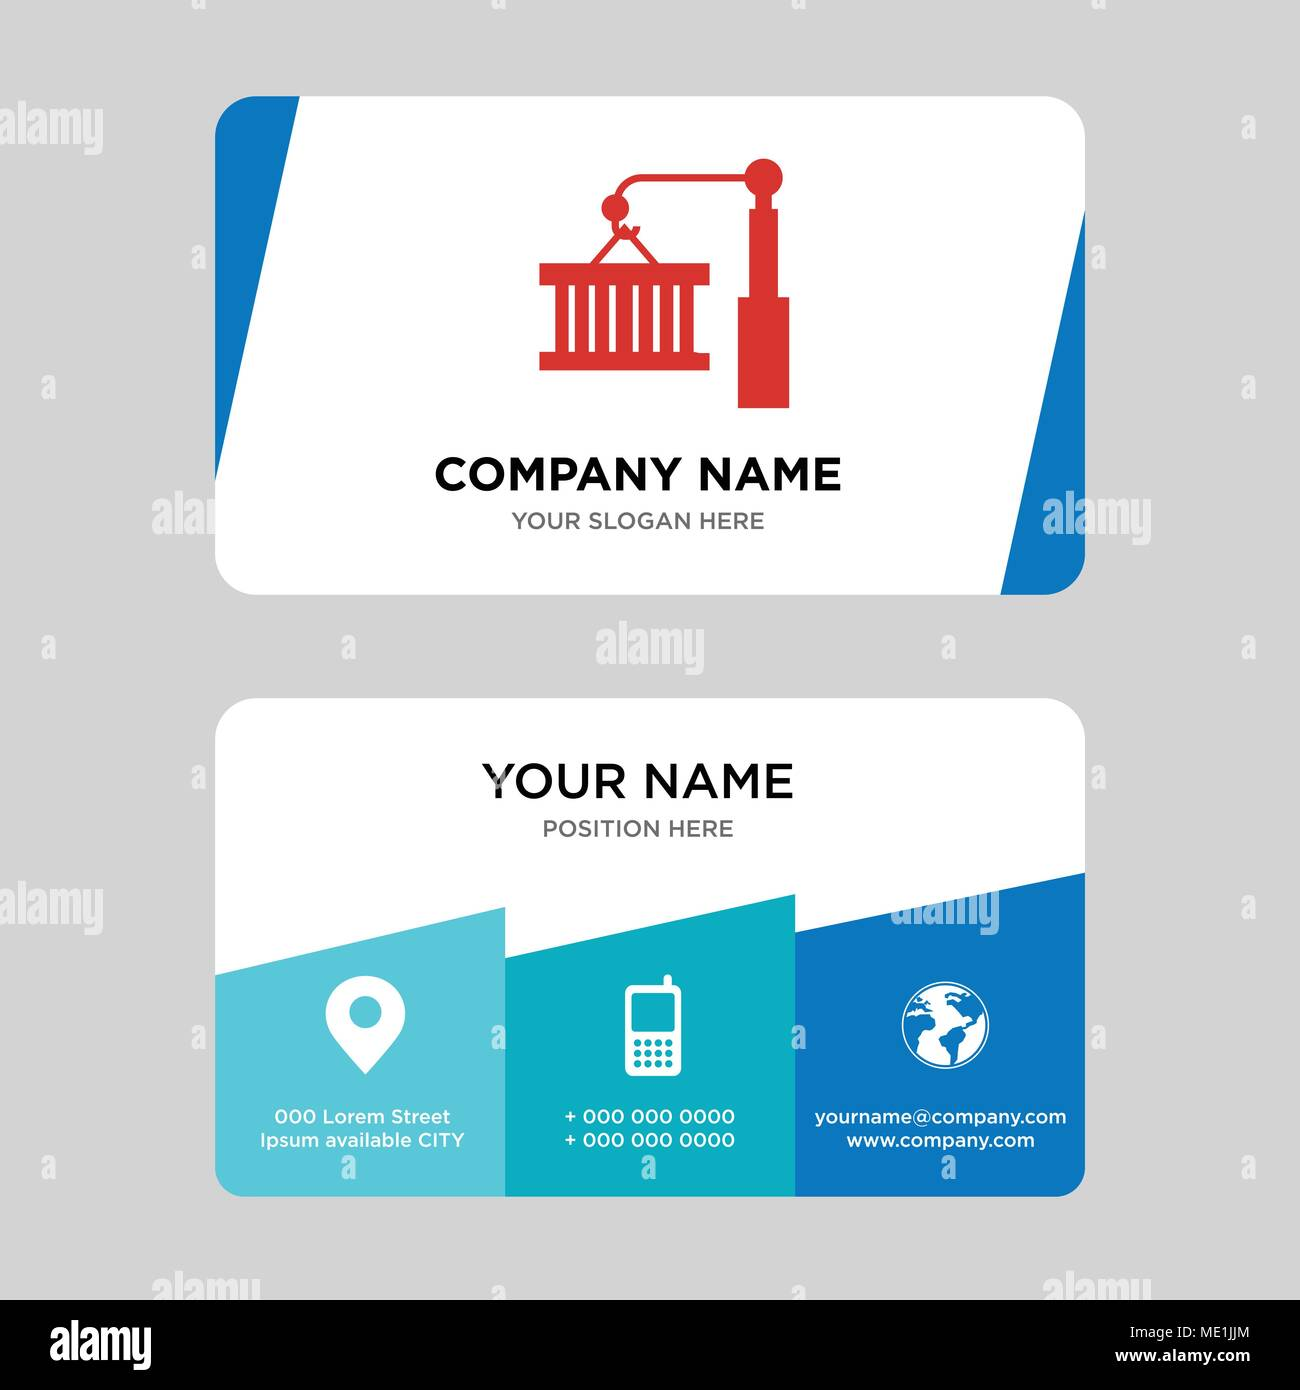 Container on a crane business card design template visiting for container on a crane business card design template visiting for your company modern creative and clean identity card vector illustration colourmoves